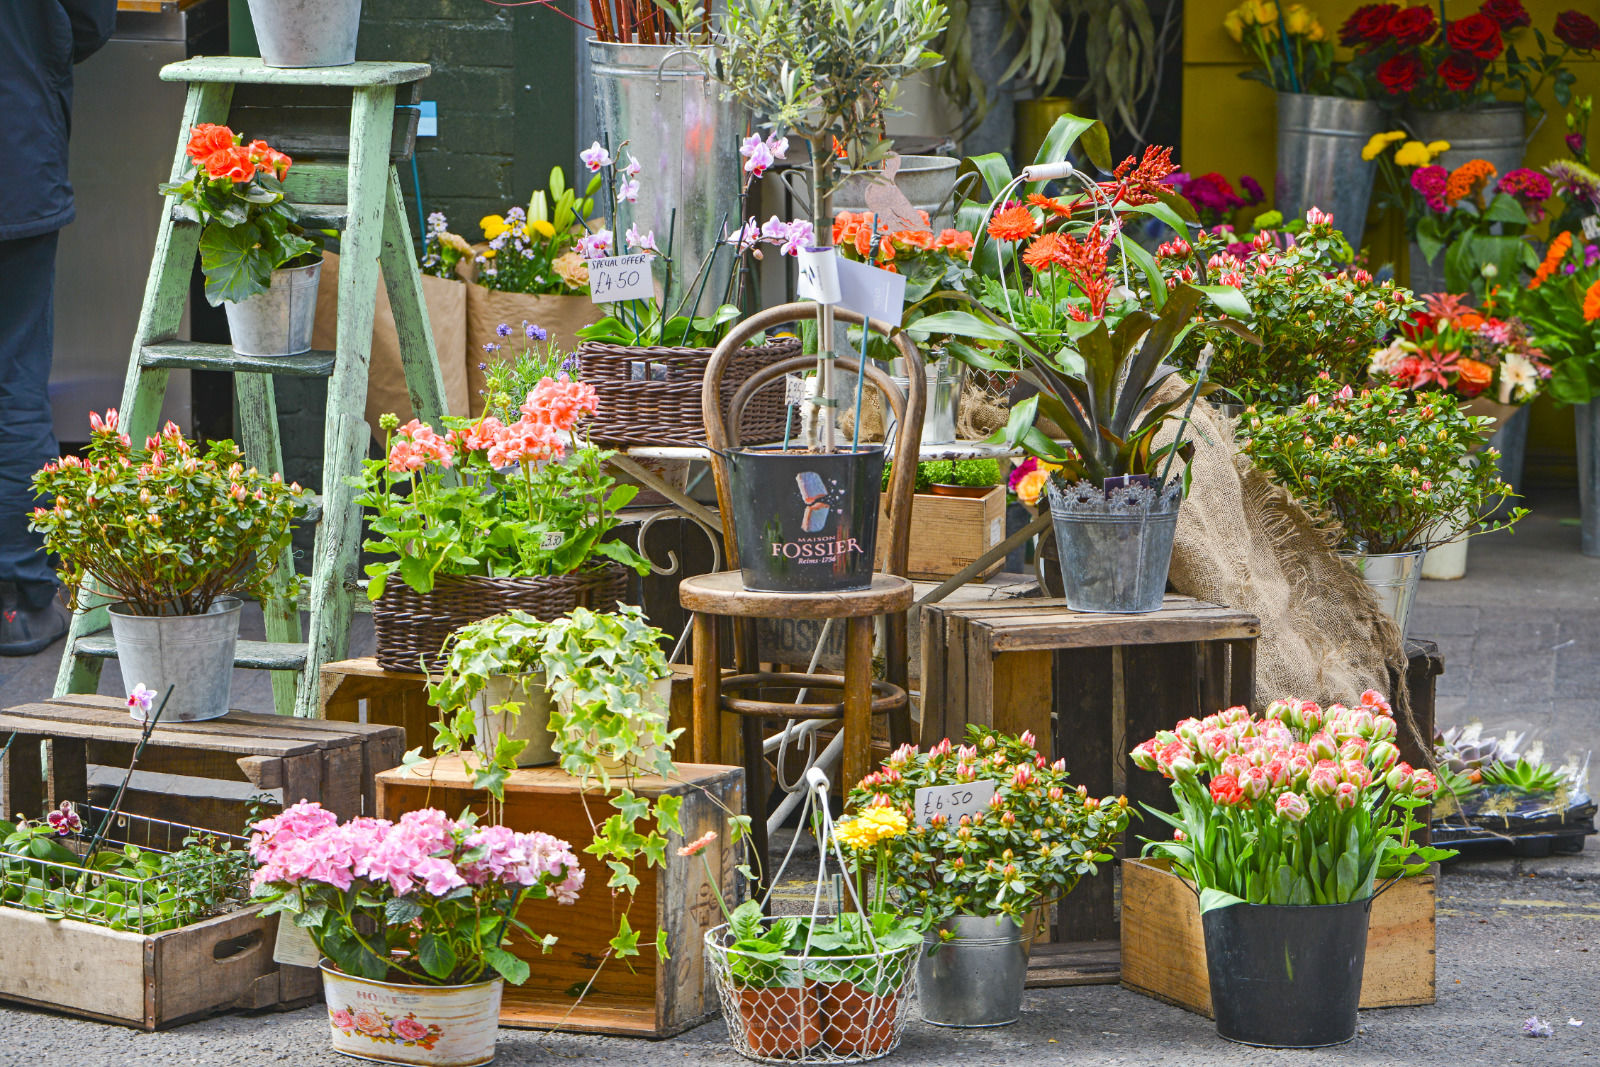 local london area photo flower stall